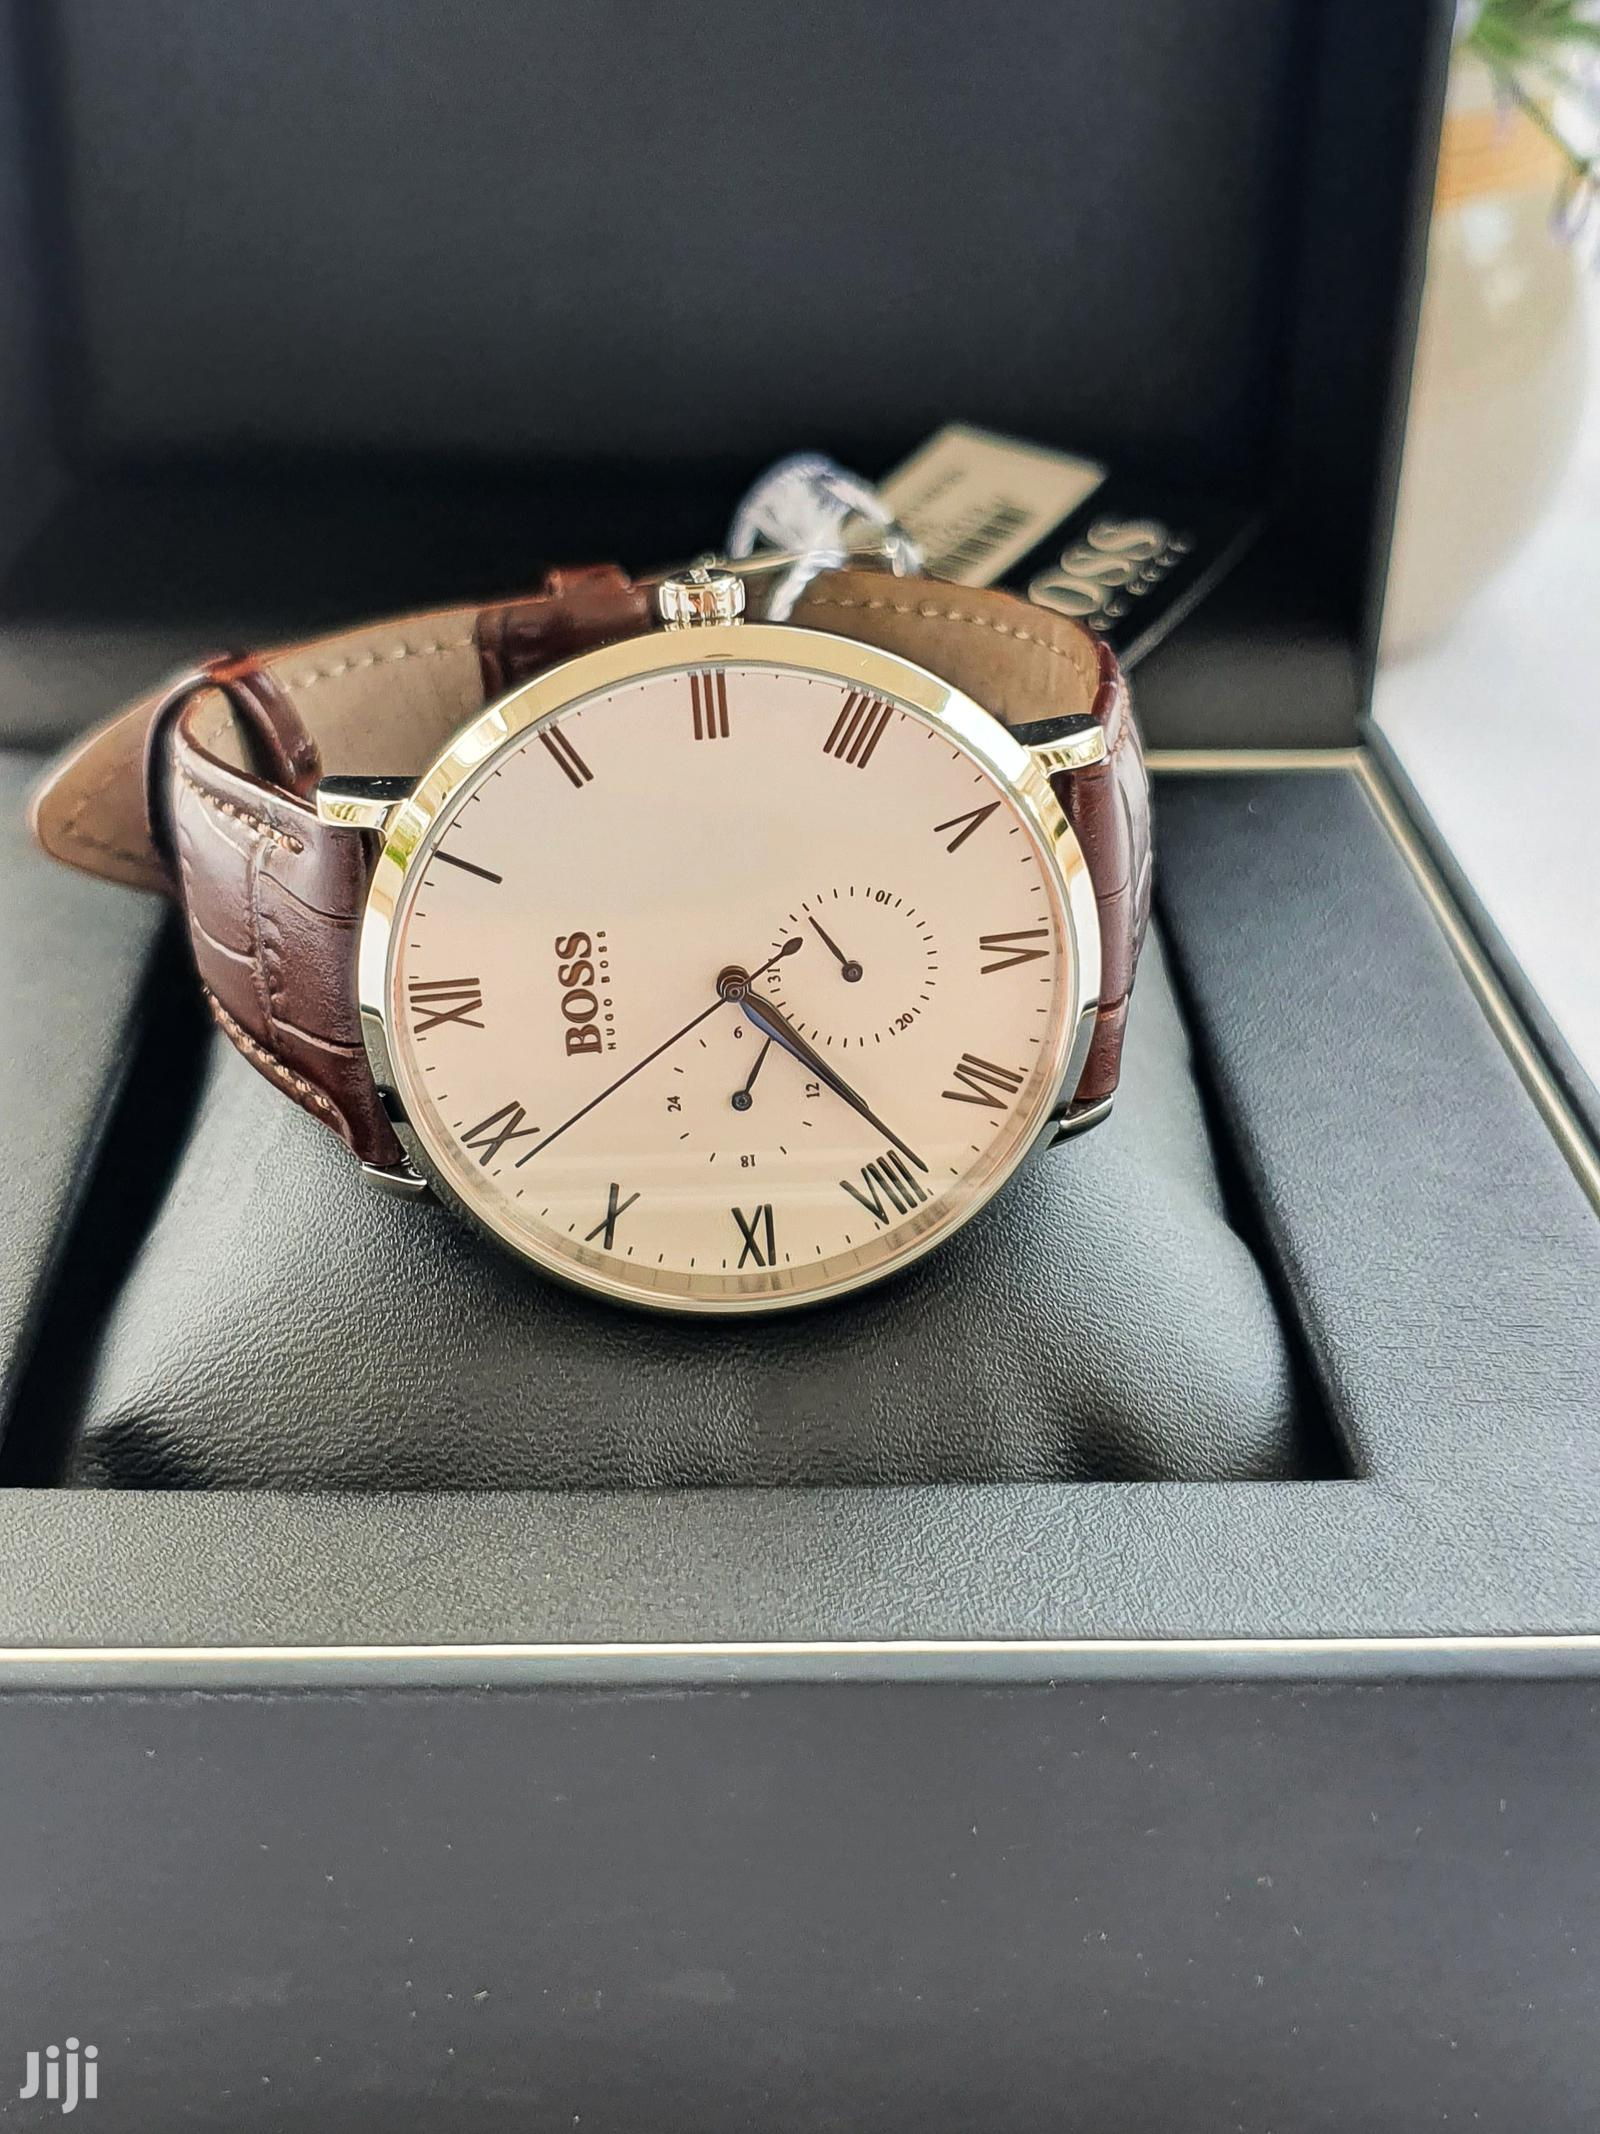 Hugo Boss Leather Watch | Watches for sale in Accra Metropolitan, Greater Accra, Ghana